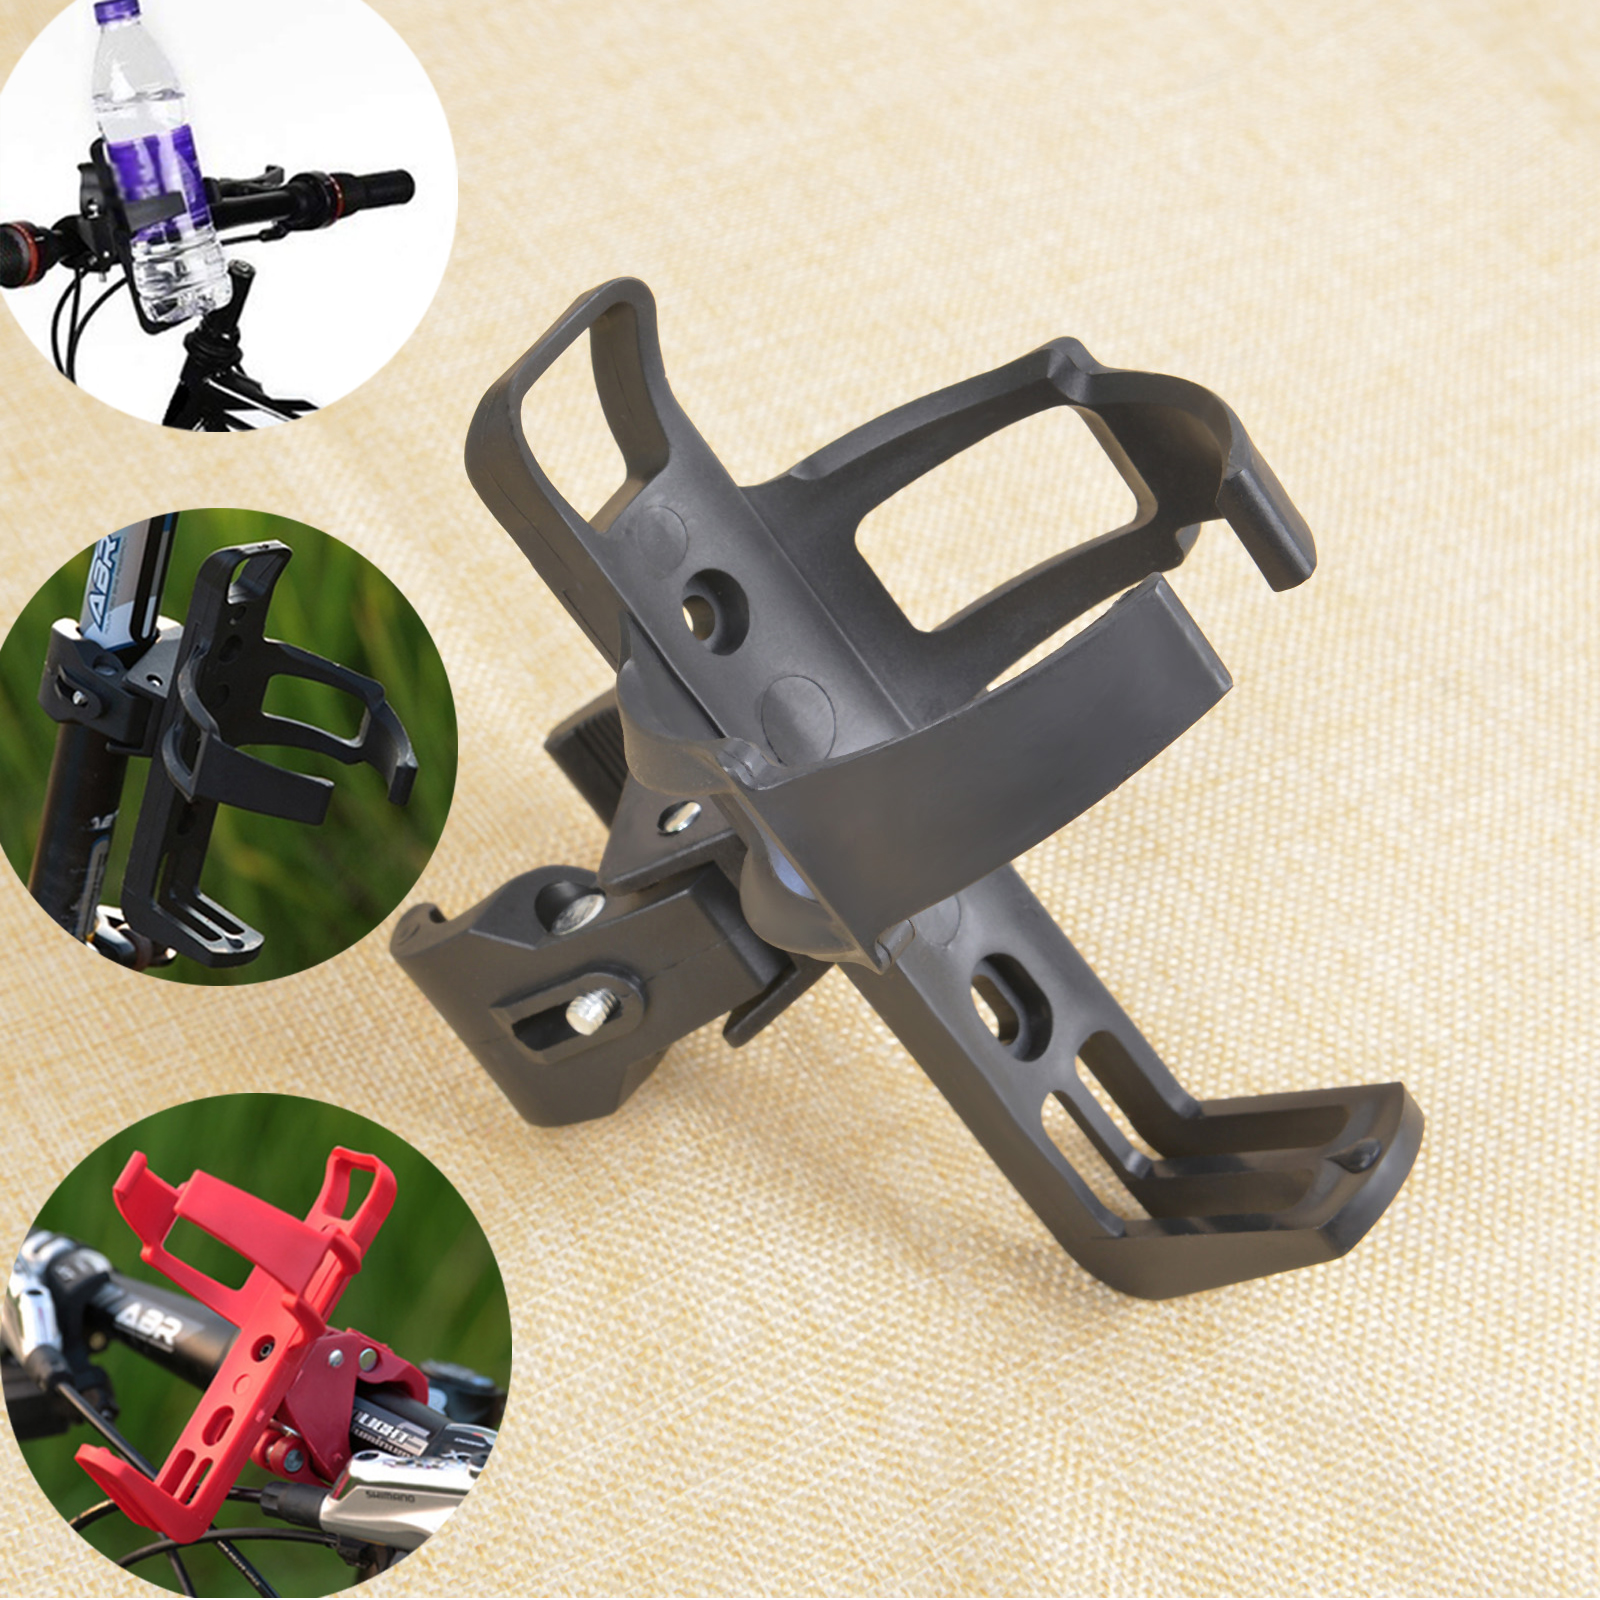 Bicycle Beverage Water Bottle Holder Bike Cup Holder 360 Degree Rack Cage For MTB Bike Bicycle Stroller Motorcycle Cycling Parts